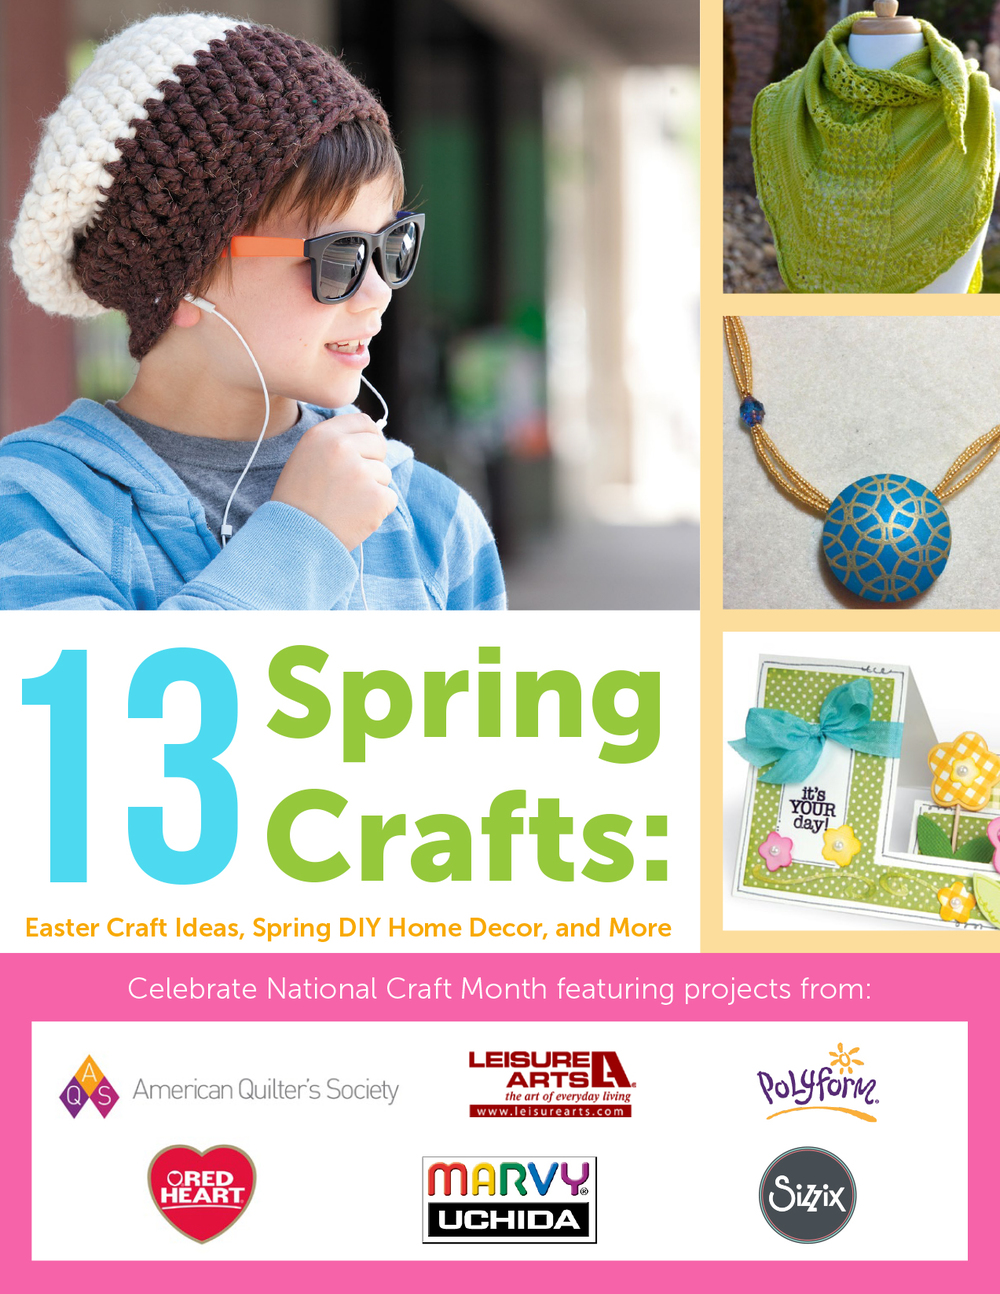 13 Spring Crafts: Easter Craft Ideas, Spring DIY Home ...